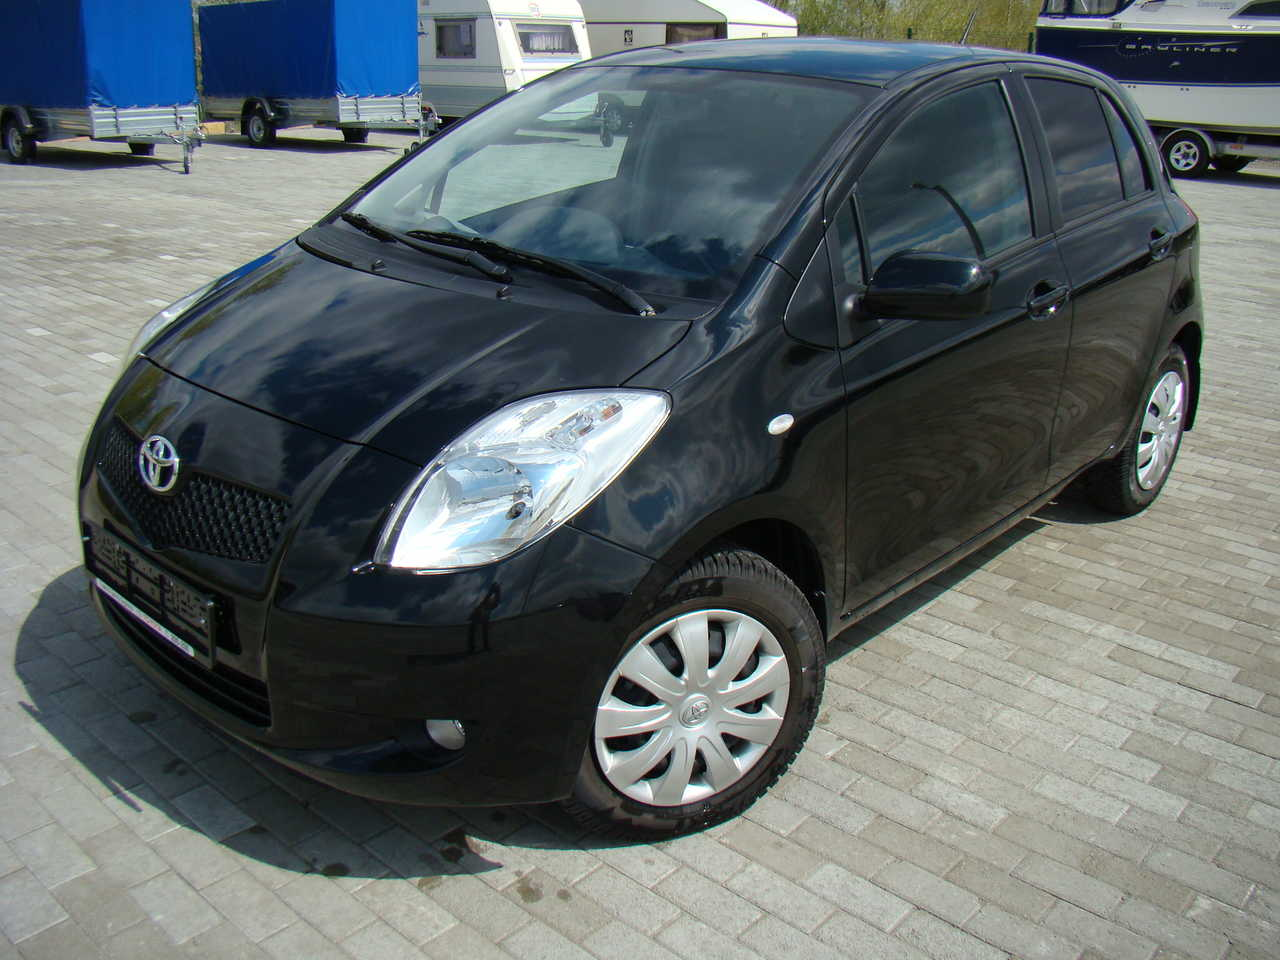 2008 toyota yaris pictures 1298cc gasoline ff automatic for sale. Black Bedroom Furniture Sets. Home Design Ideas